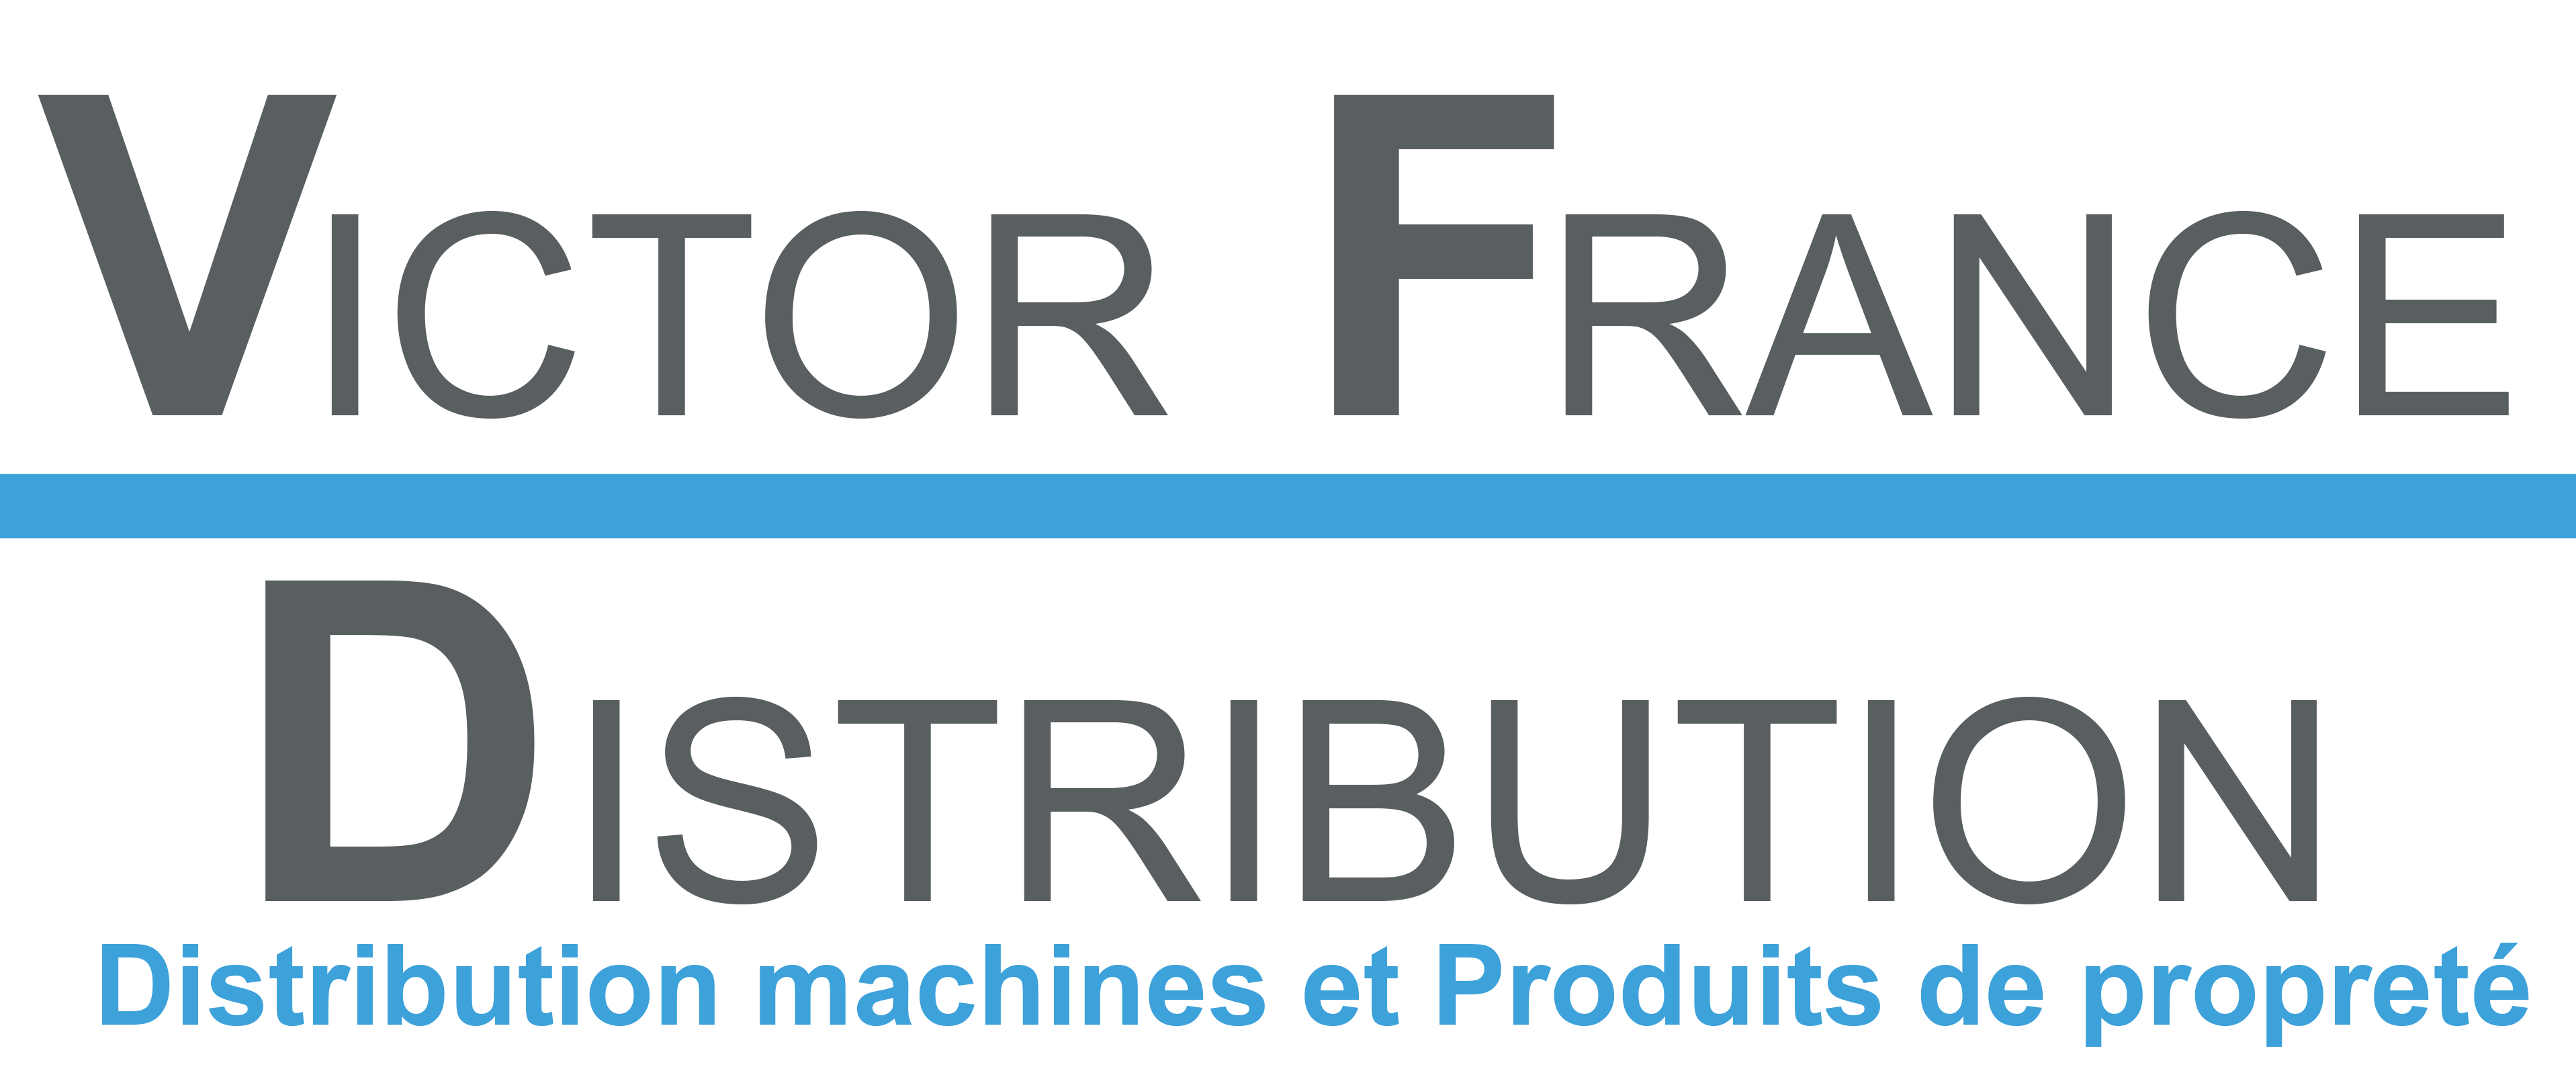 Victor France Distribution